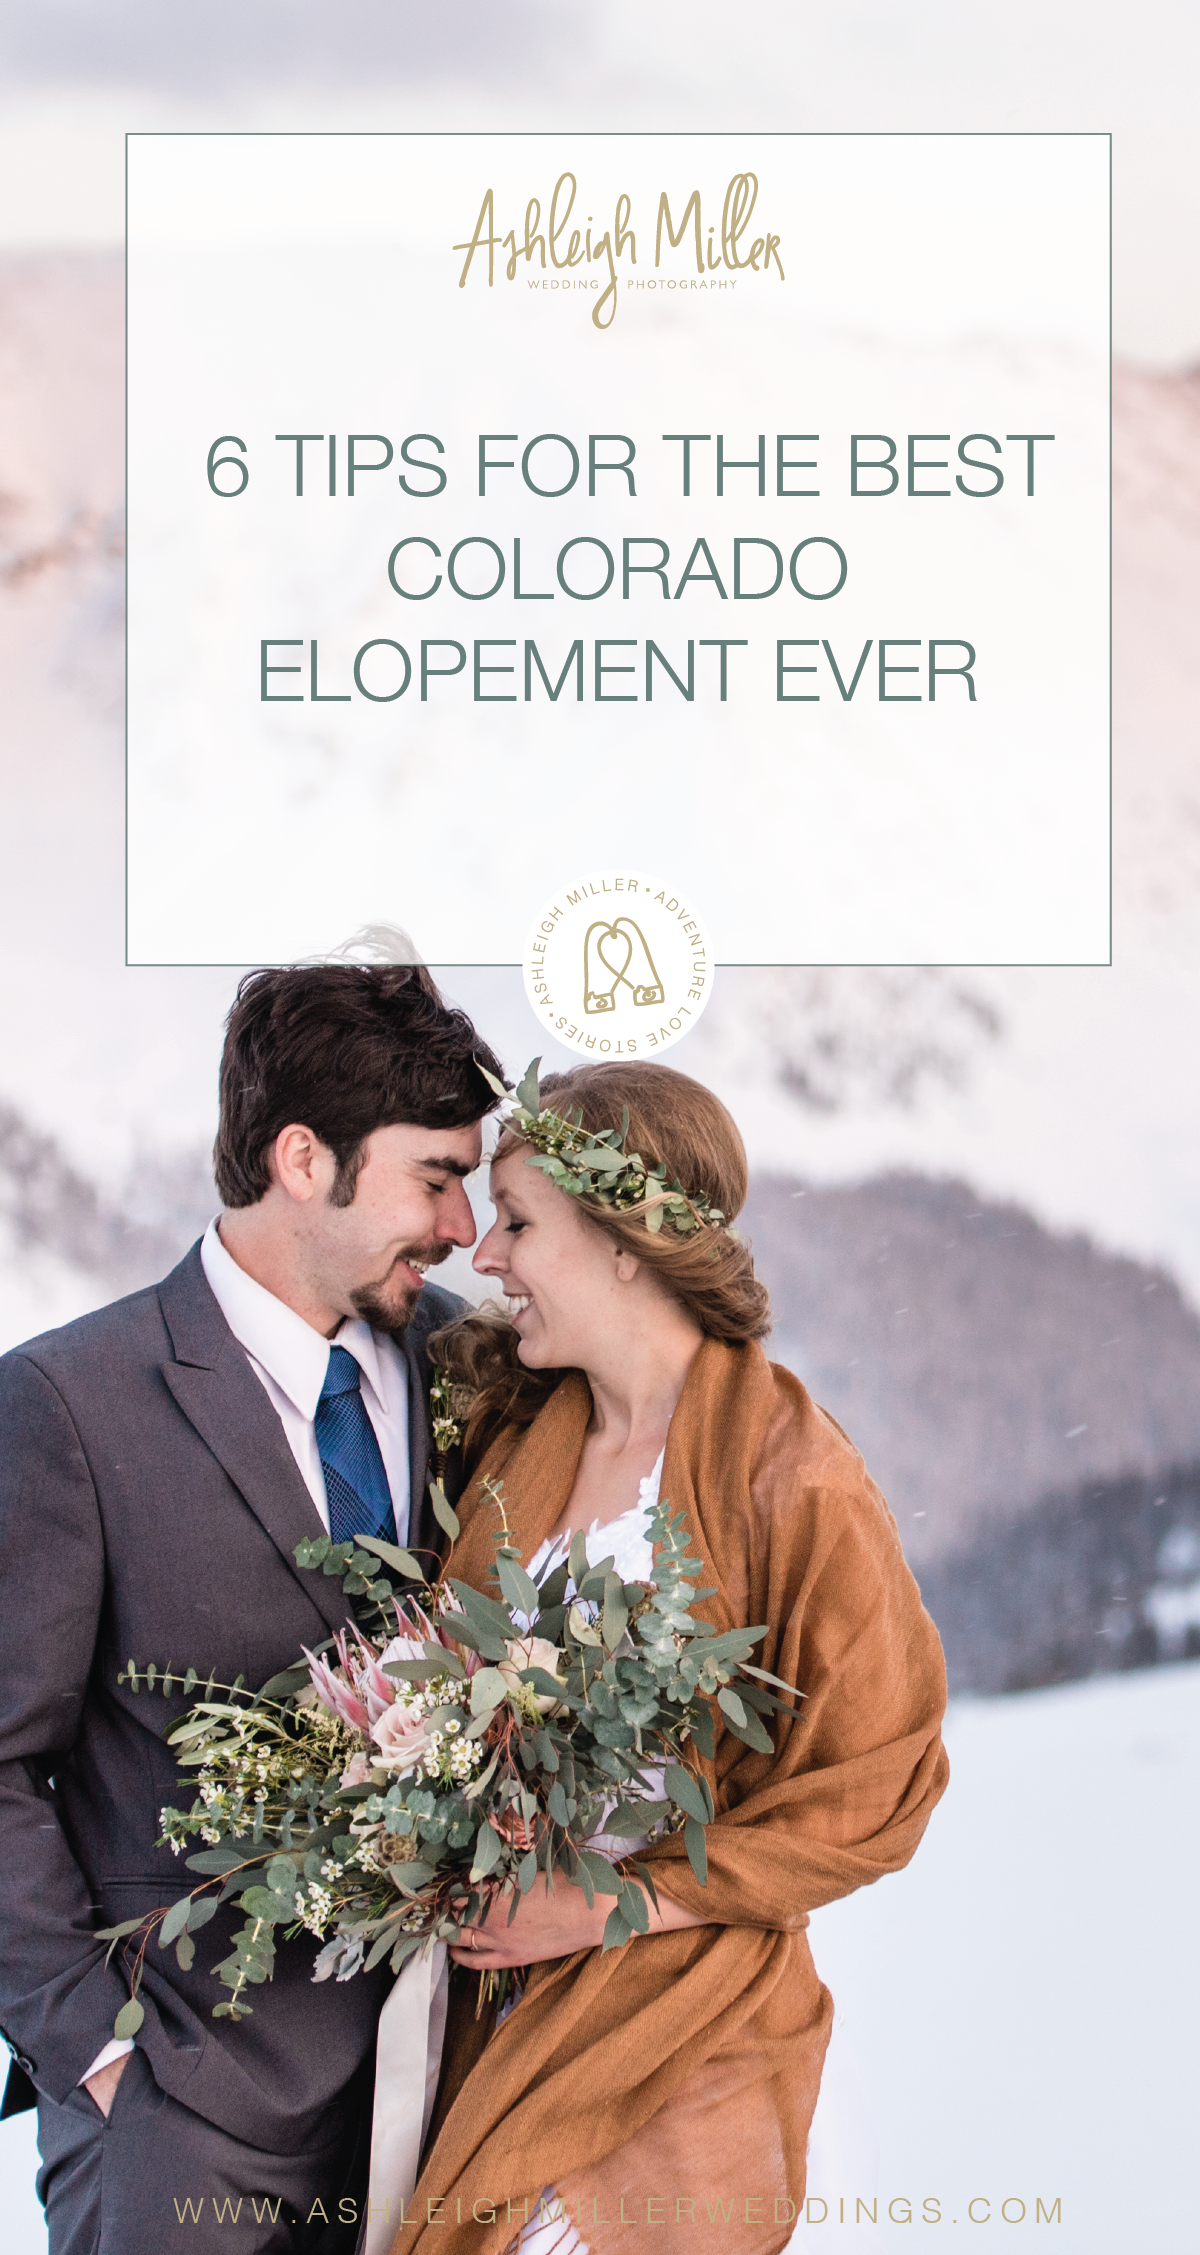 Do you want to have the very best Colorado elopement, like ever, because I know I want you to!! So I guess this isn't an actual tip but number one plan plan plan plan plan! When we plan well, we can really do whatever we want to! I mean it's your day, it's your elopement, it's your adventure! Let's have a blast but let's make sure we plan out the day! Cause no one wants to look forward to some grand adventure and be left sitting in a parking lot wondering what to do. So here are some tips to make it the best elopement ever!